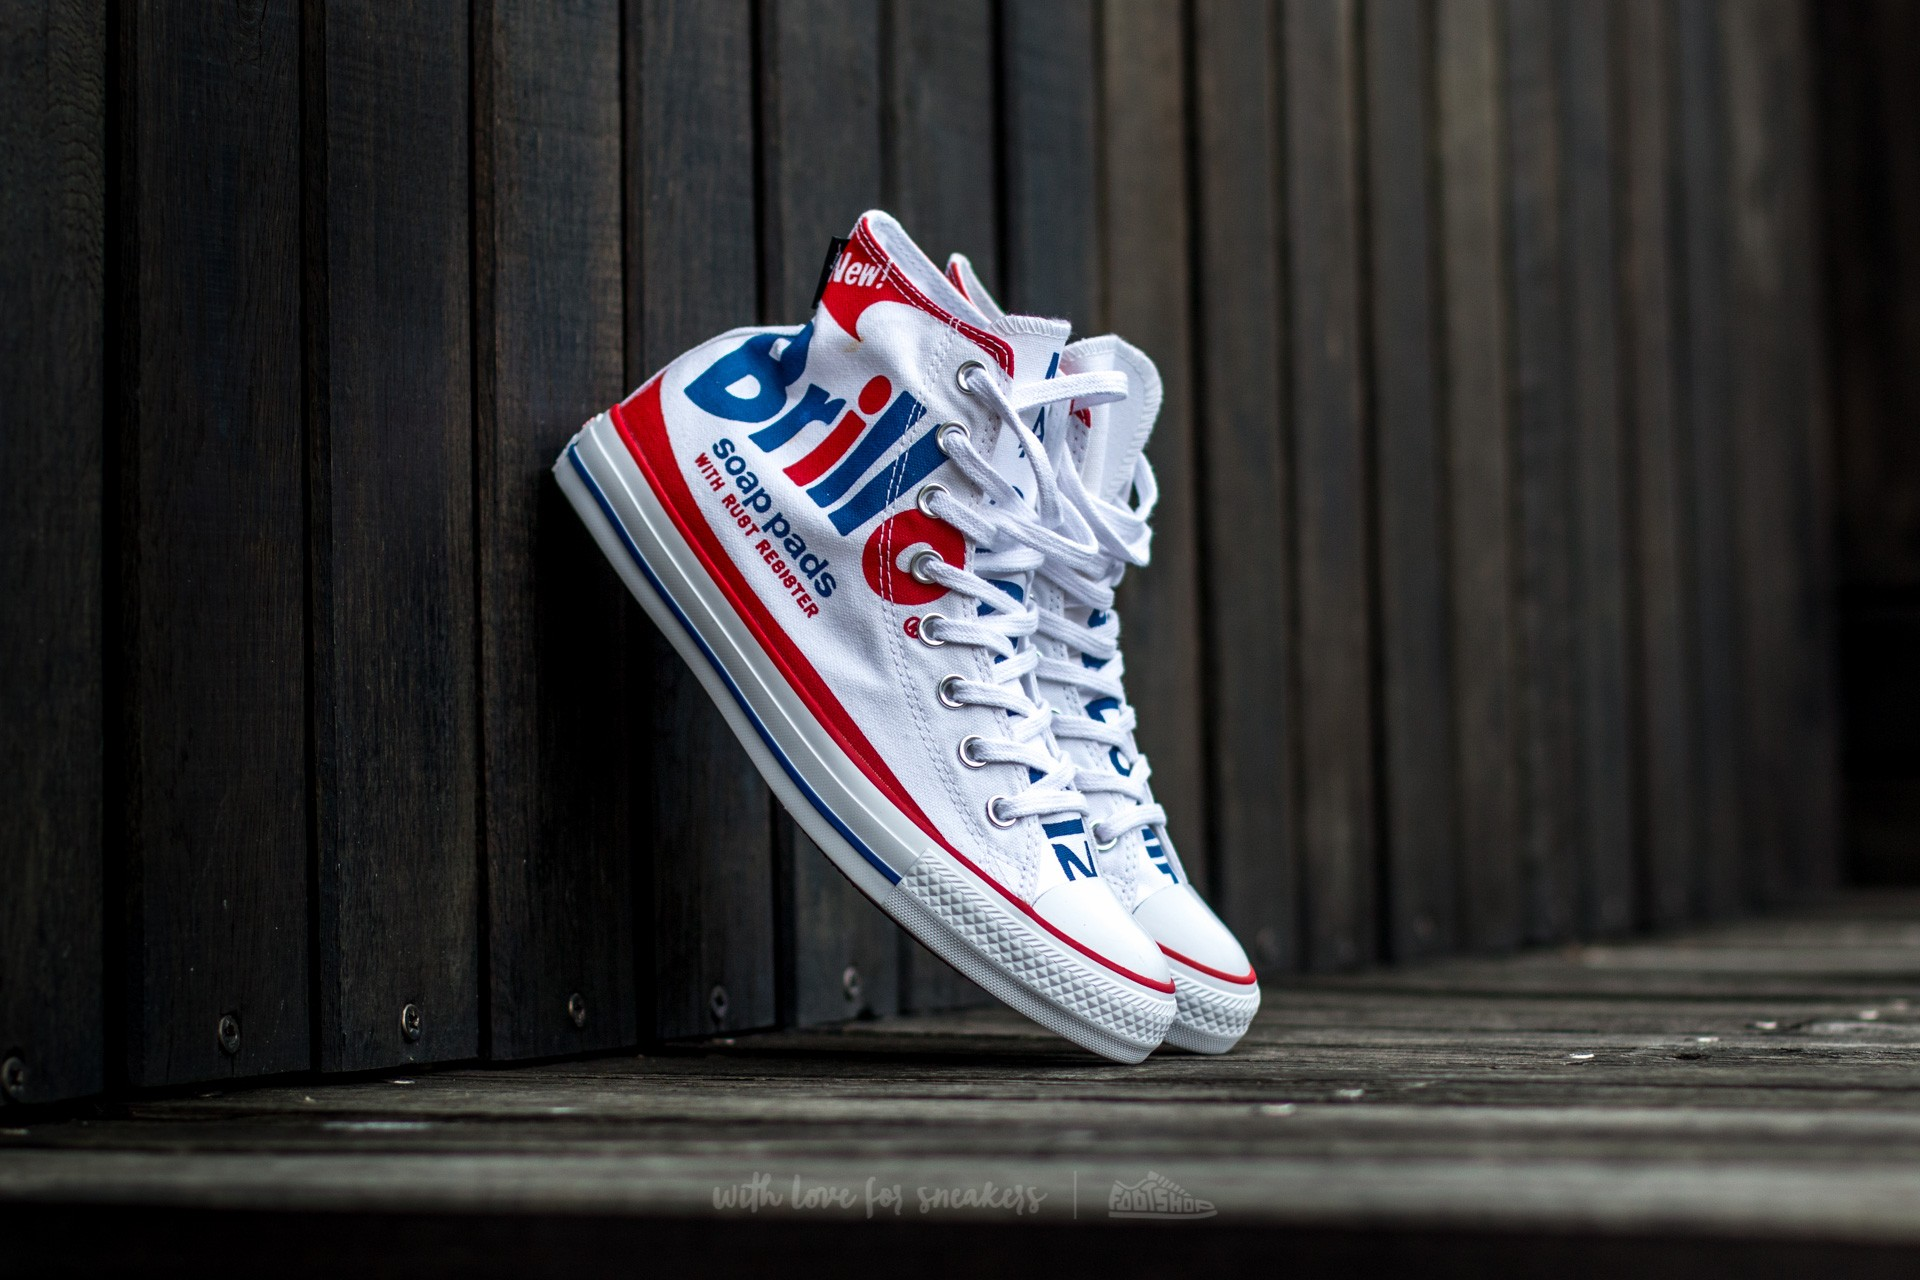 f3158c0ae8ca19 Converse Chuck Taylor All Star Hi Andy Warhol White  Red  Blue ...